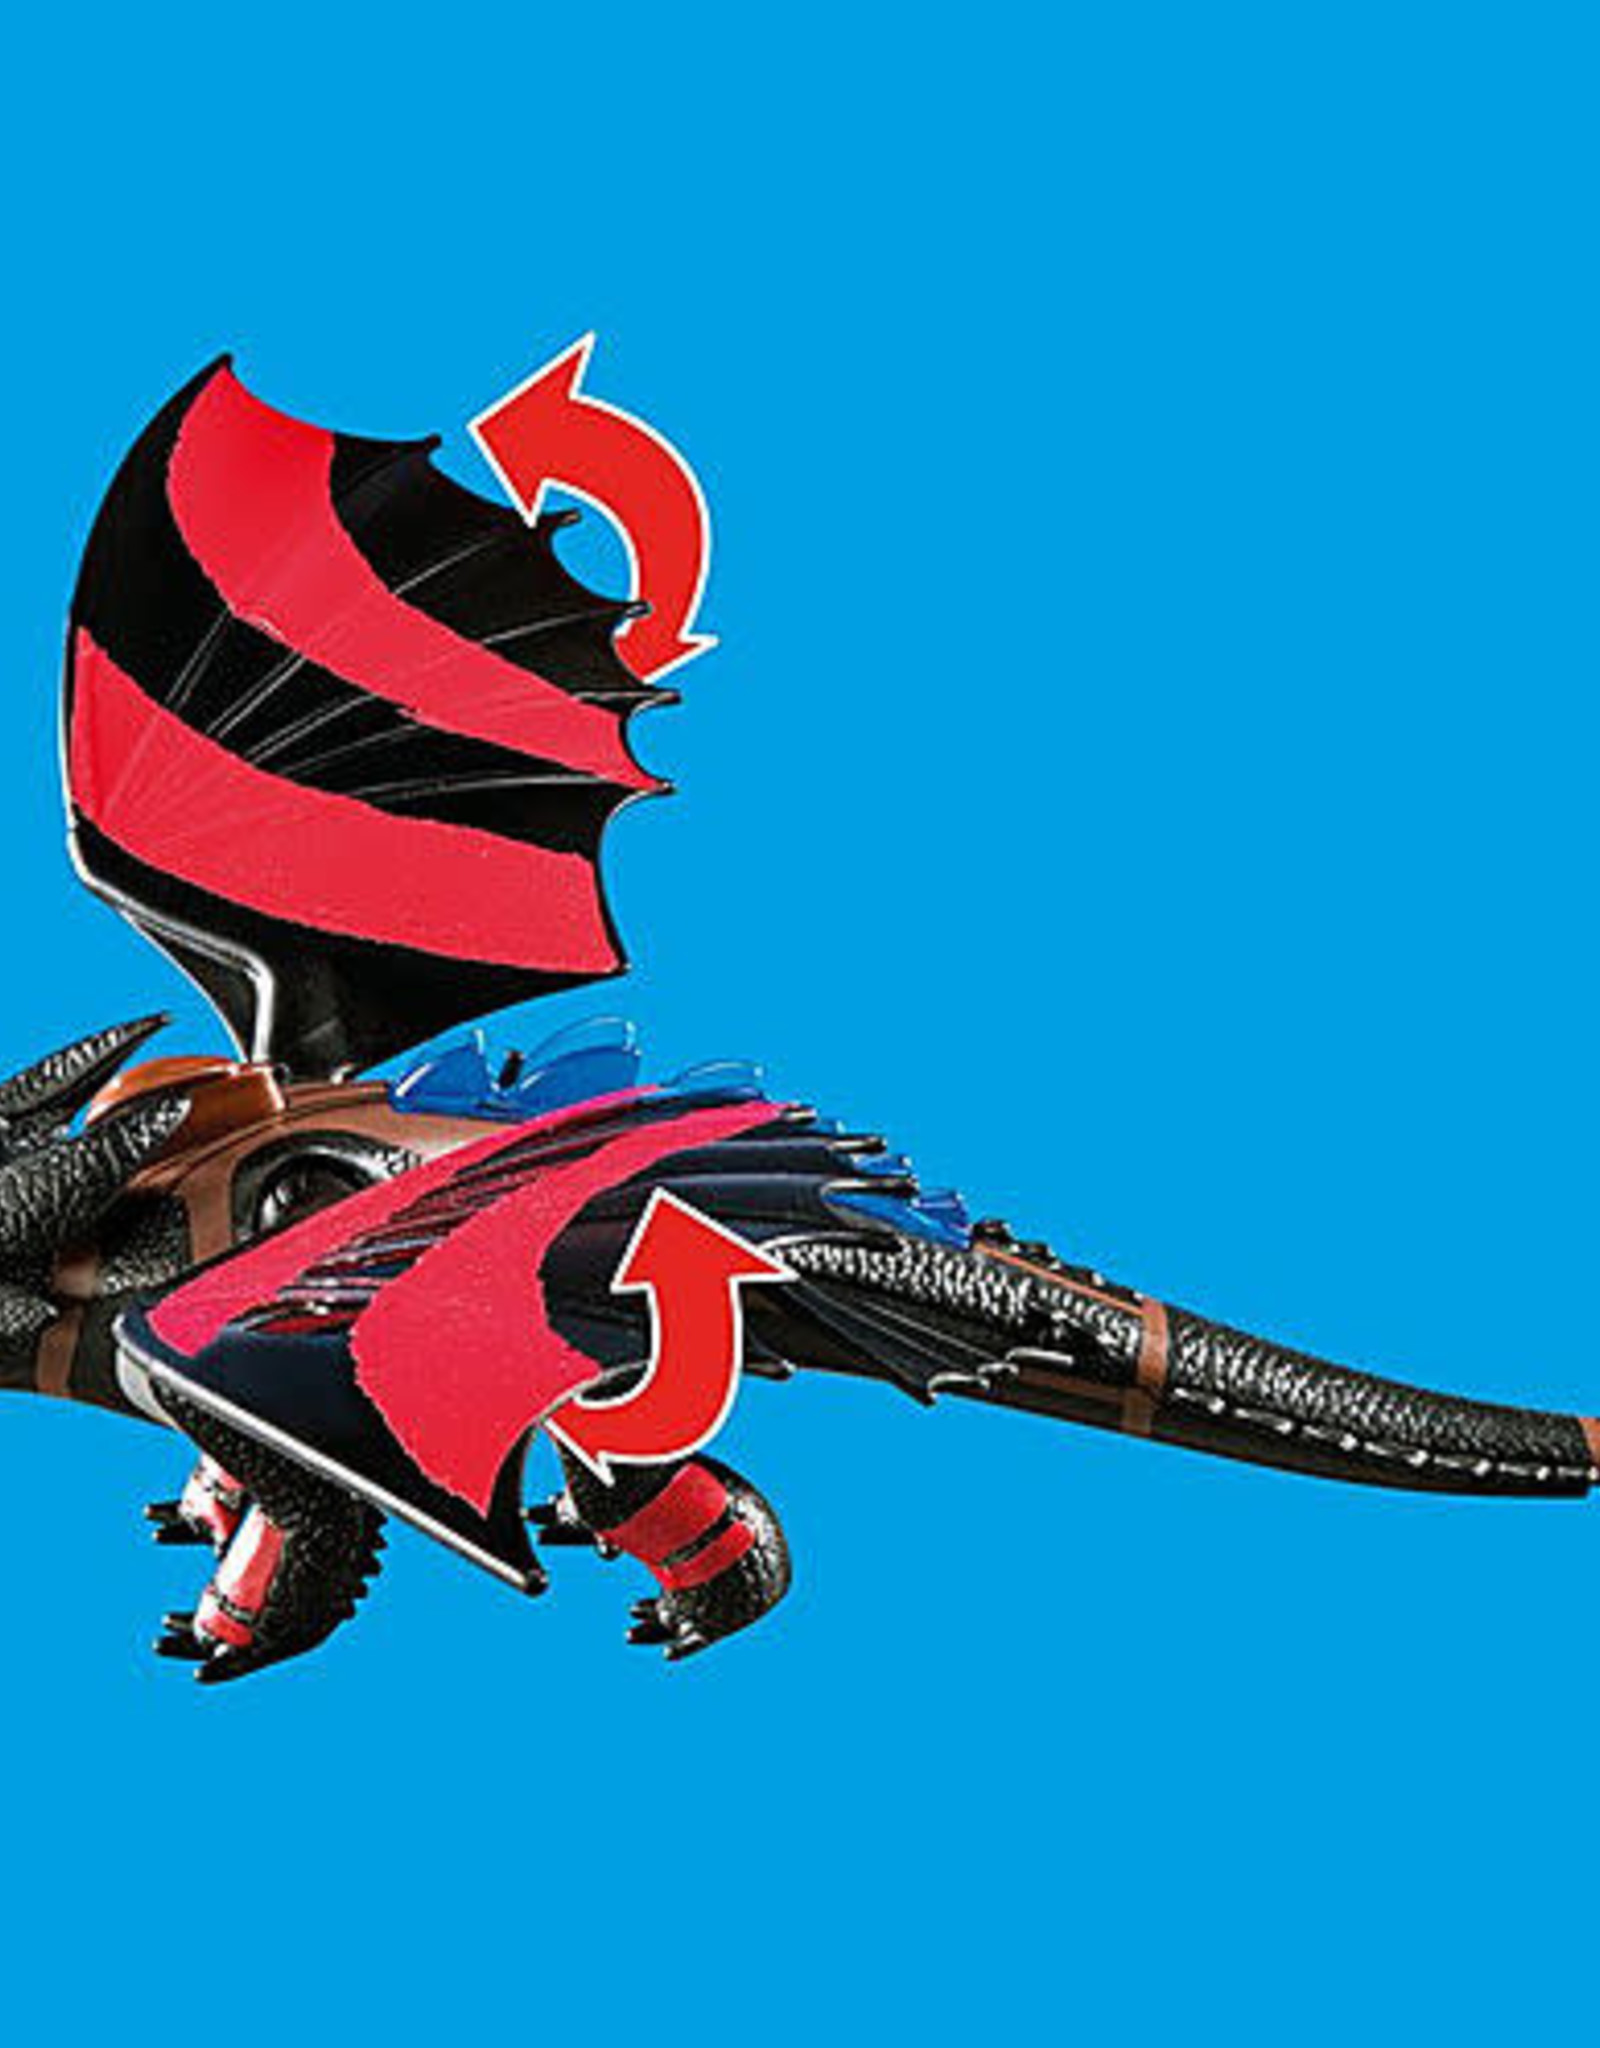 Playmobil PM Dragon Racing: Hiccup and Toothless